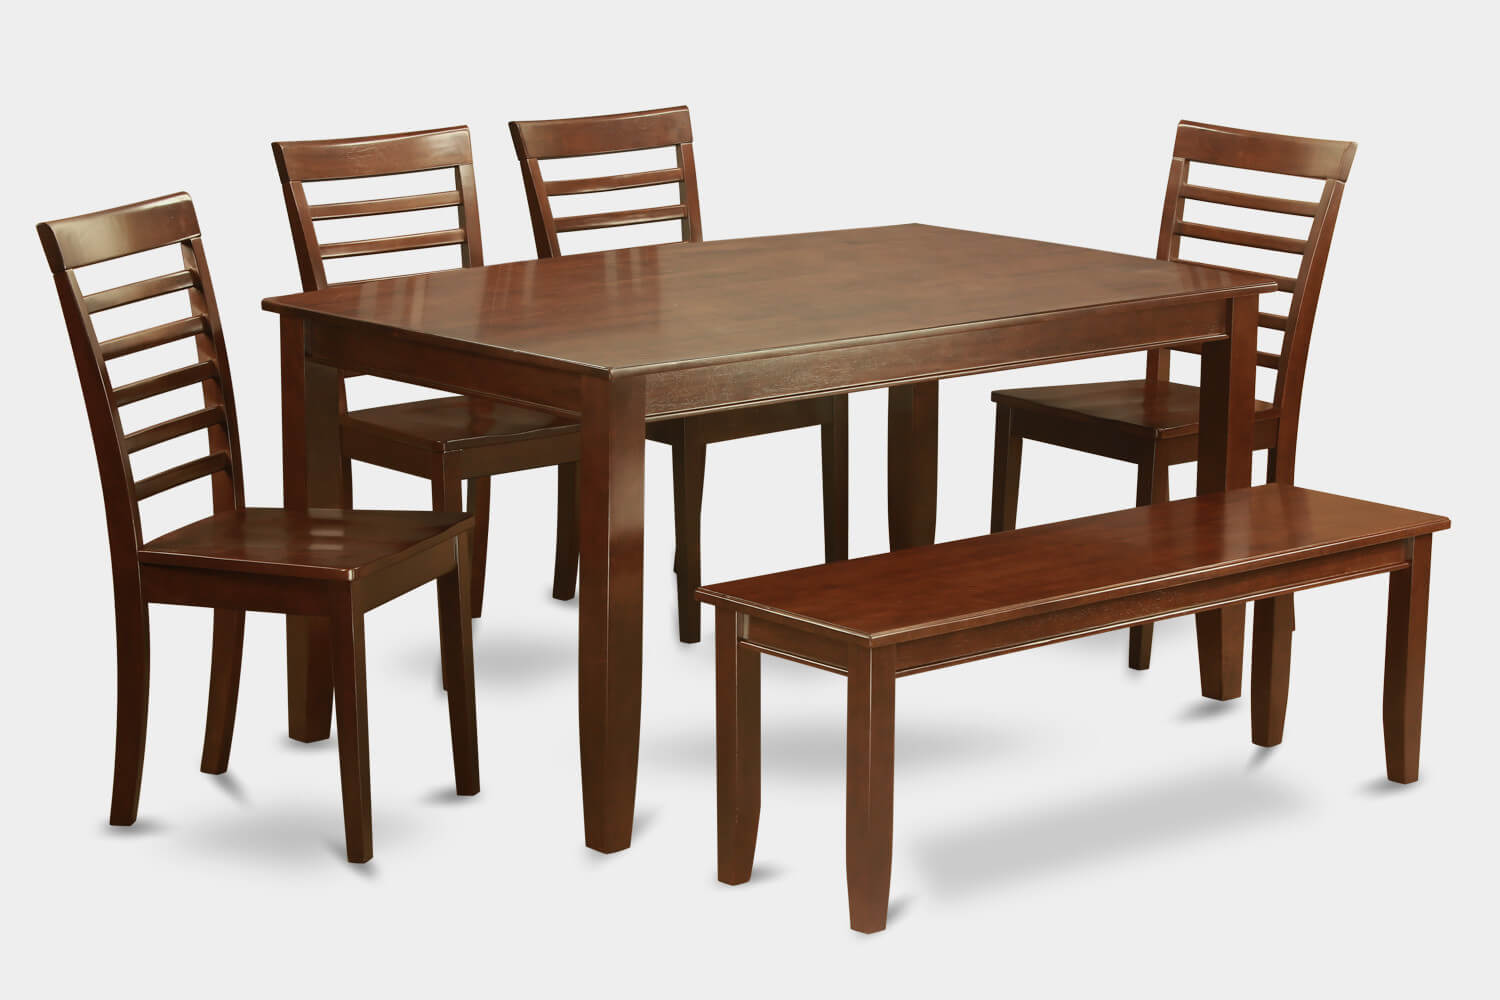 heres another solid asian wood dining set with bench in a traditional style its a - All Wood Dining Room Table